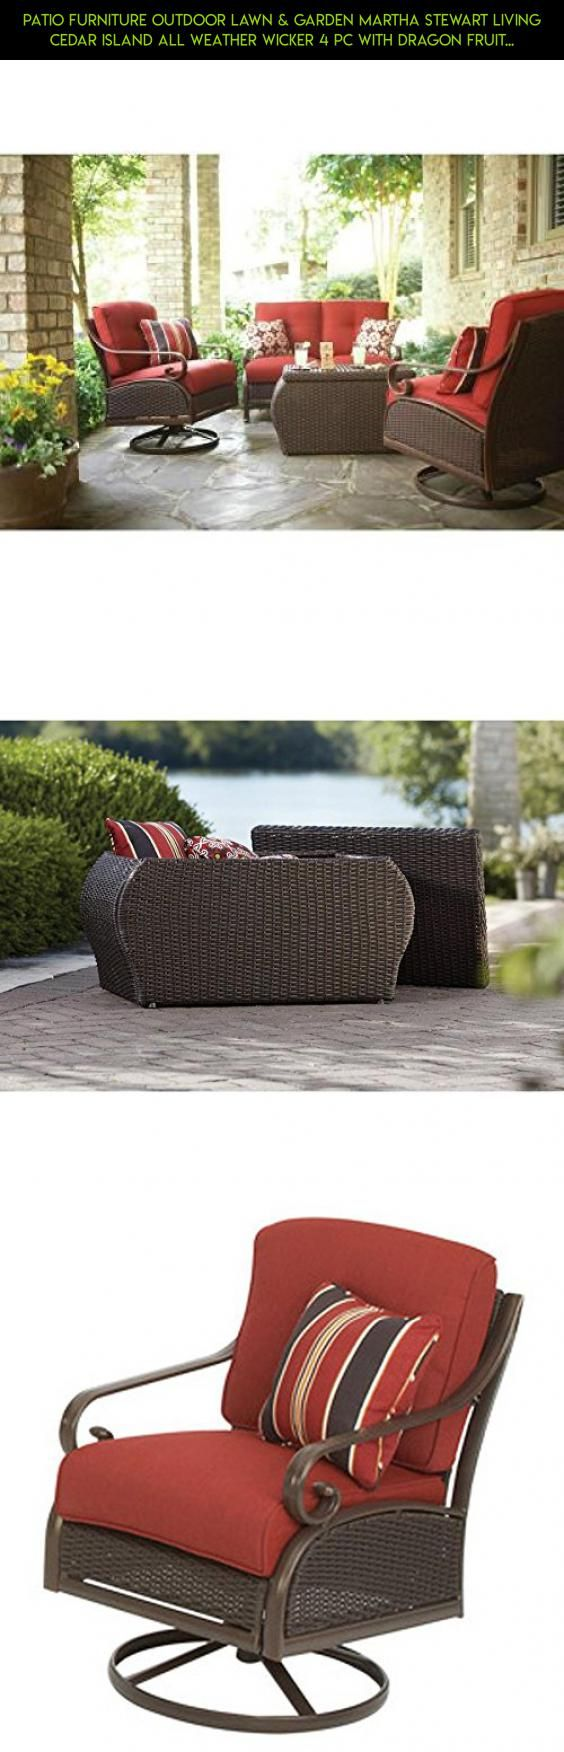 PATIO FURNITURE OUTDOOR LAWN & GARDEN MARTHA STEWART LIVING CEDAR ISLAND ALL WEATHER WICKER 4 PC WITH DRAGON FRUIT CUSHIONS RED #racing #technology #tech #plans #shopping #drone #kit #gadgets #furniture #parts #patio #fpv #products #home #camera #depot